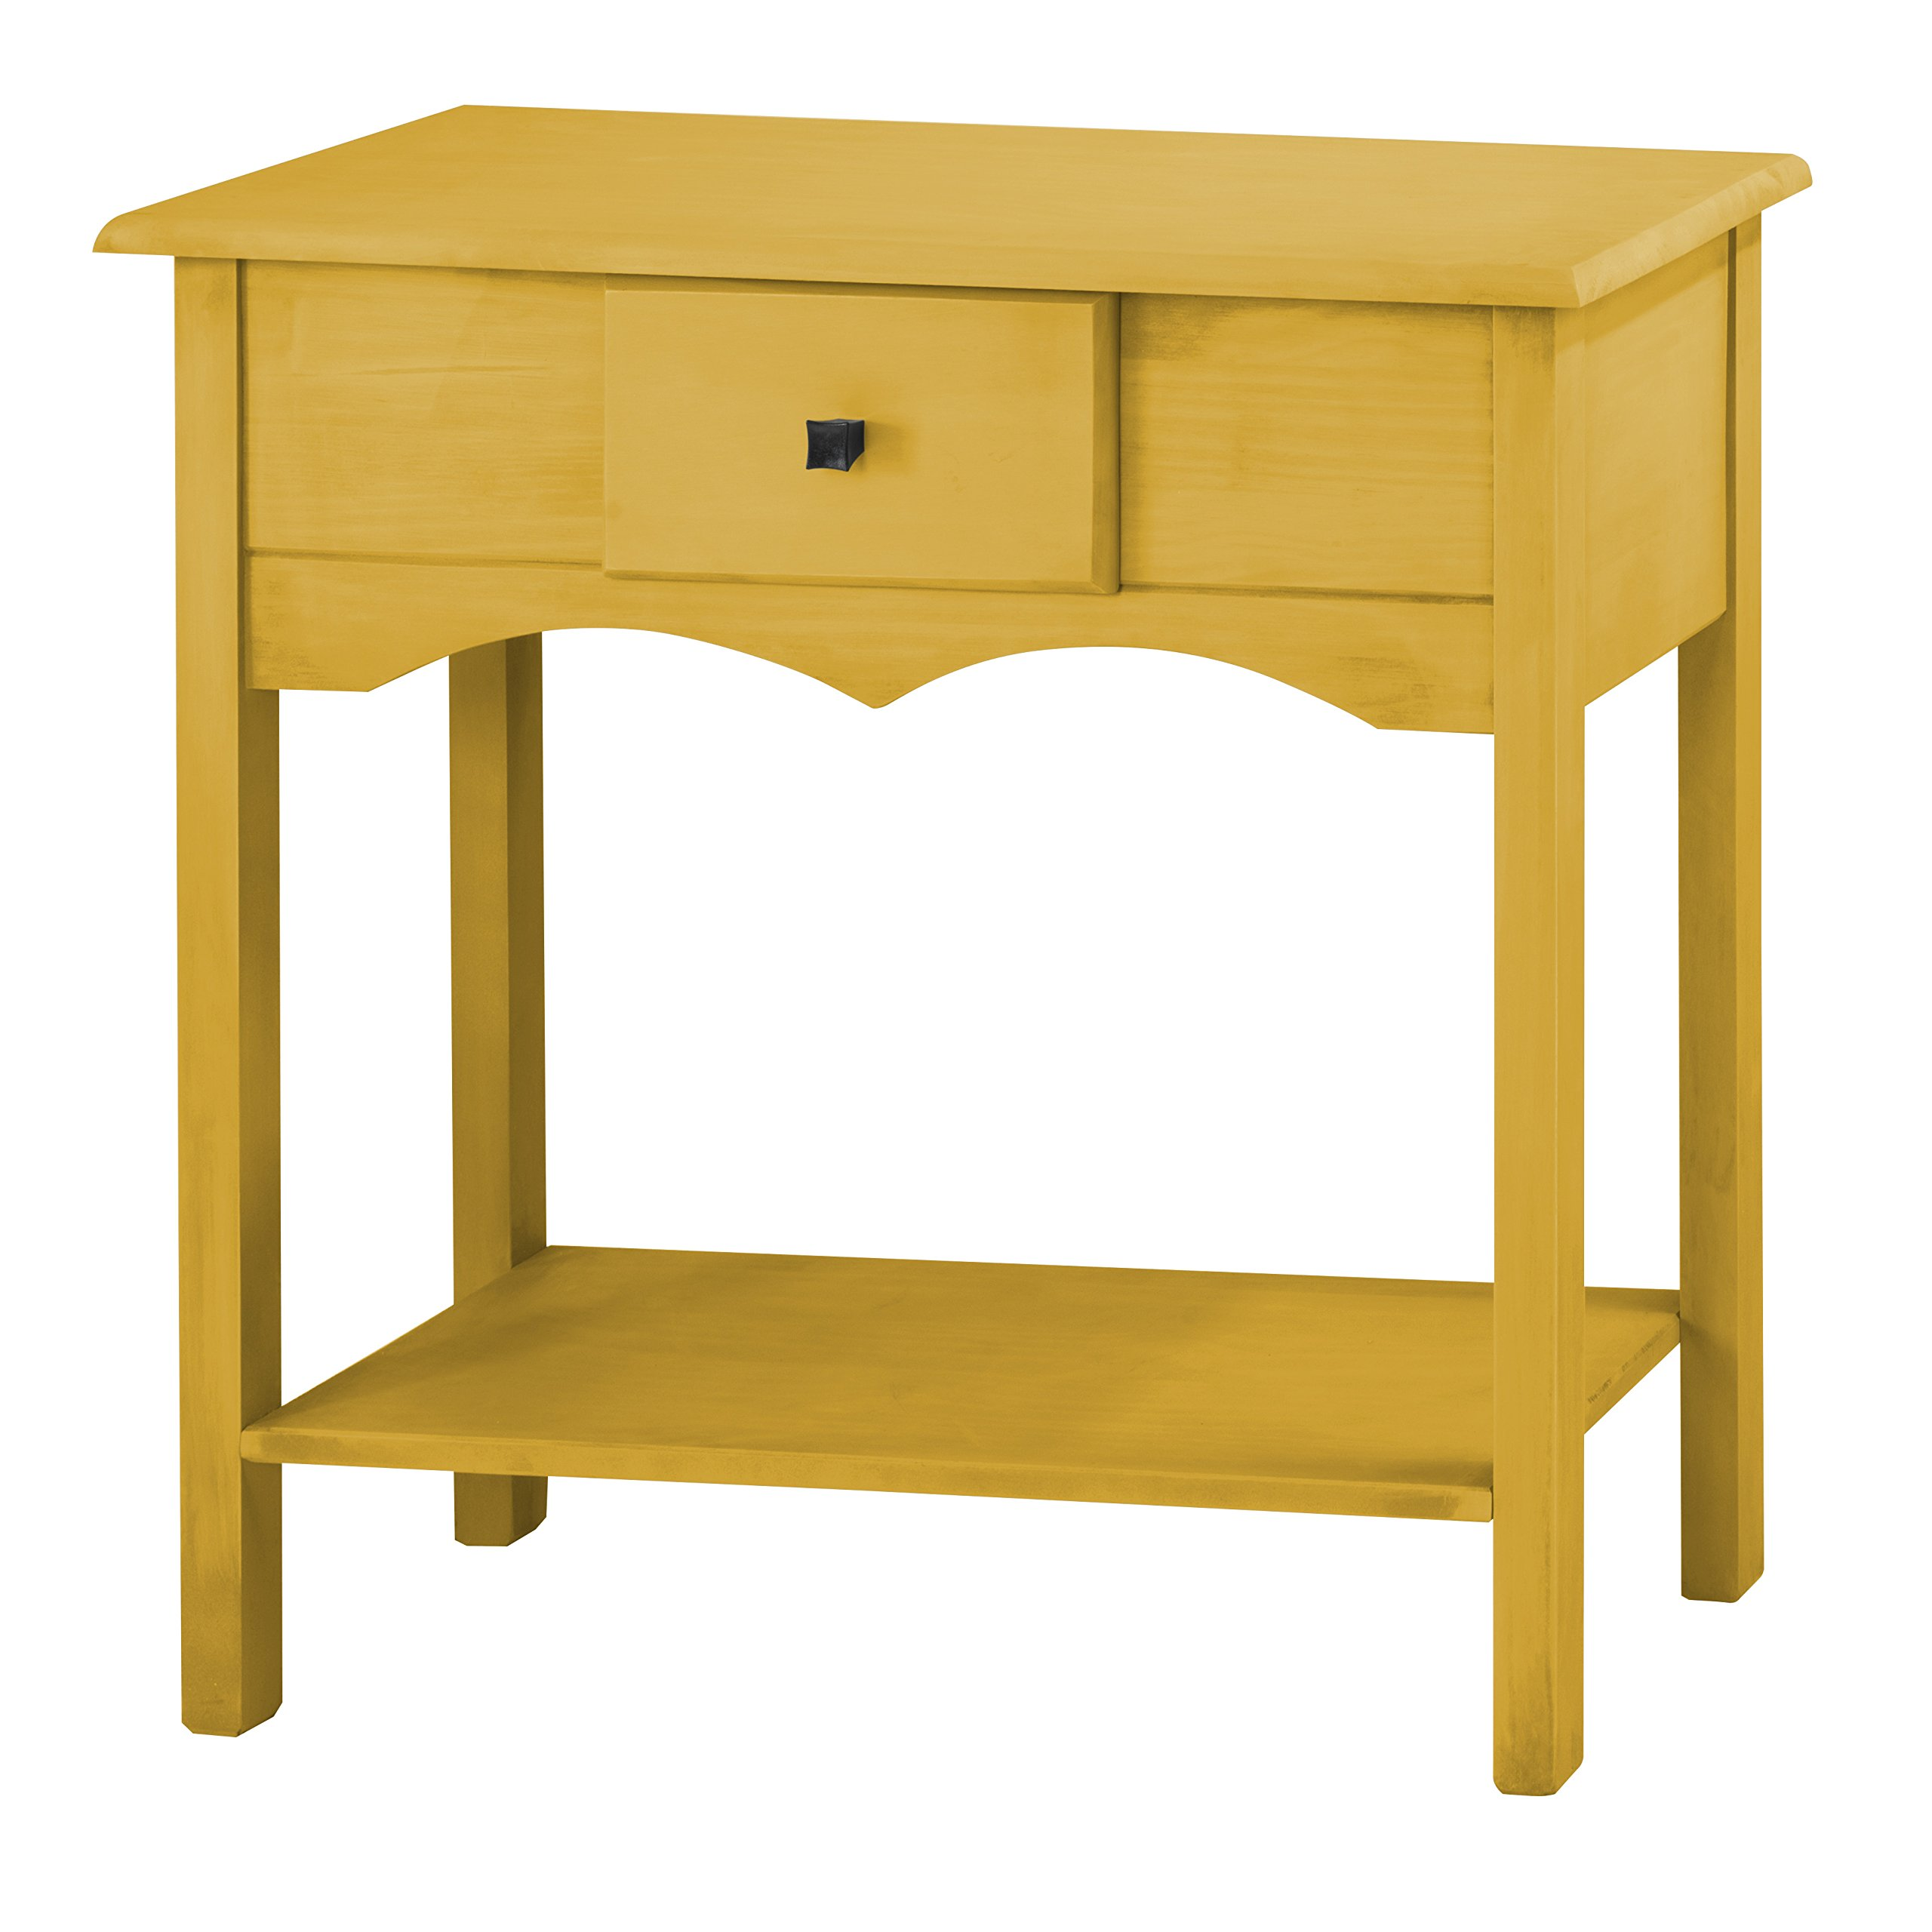 Manhattan Comfort Jay Collection Modern Wooden Sideboard Table with One Drawer and One Shelf, Yellow